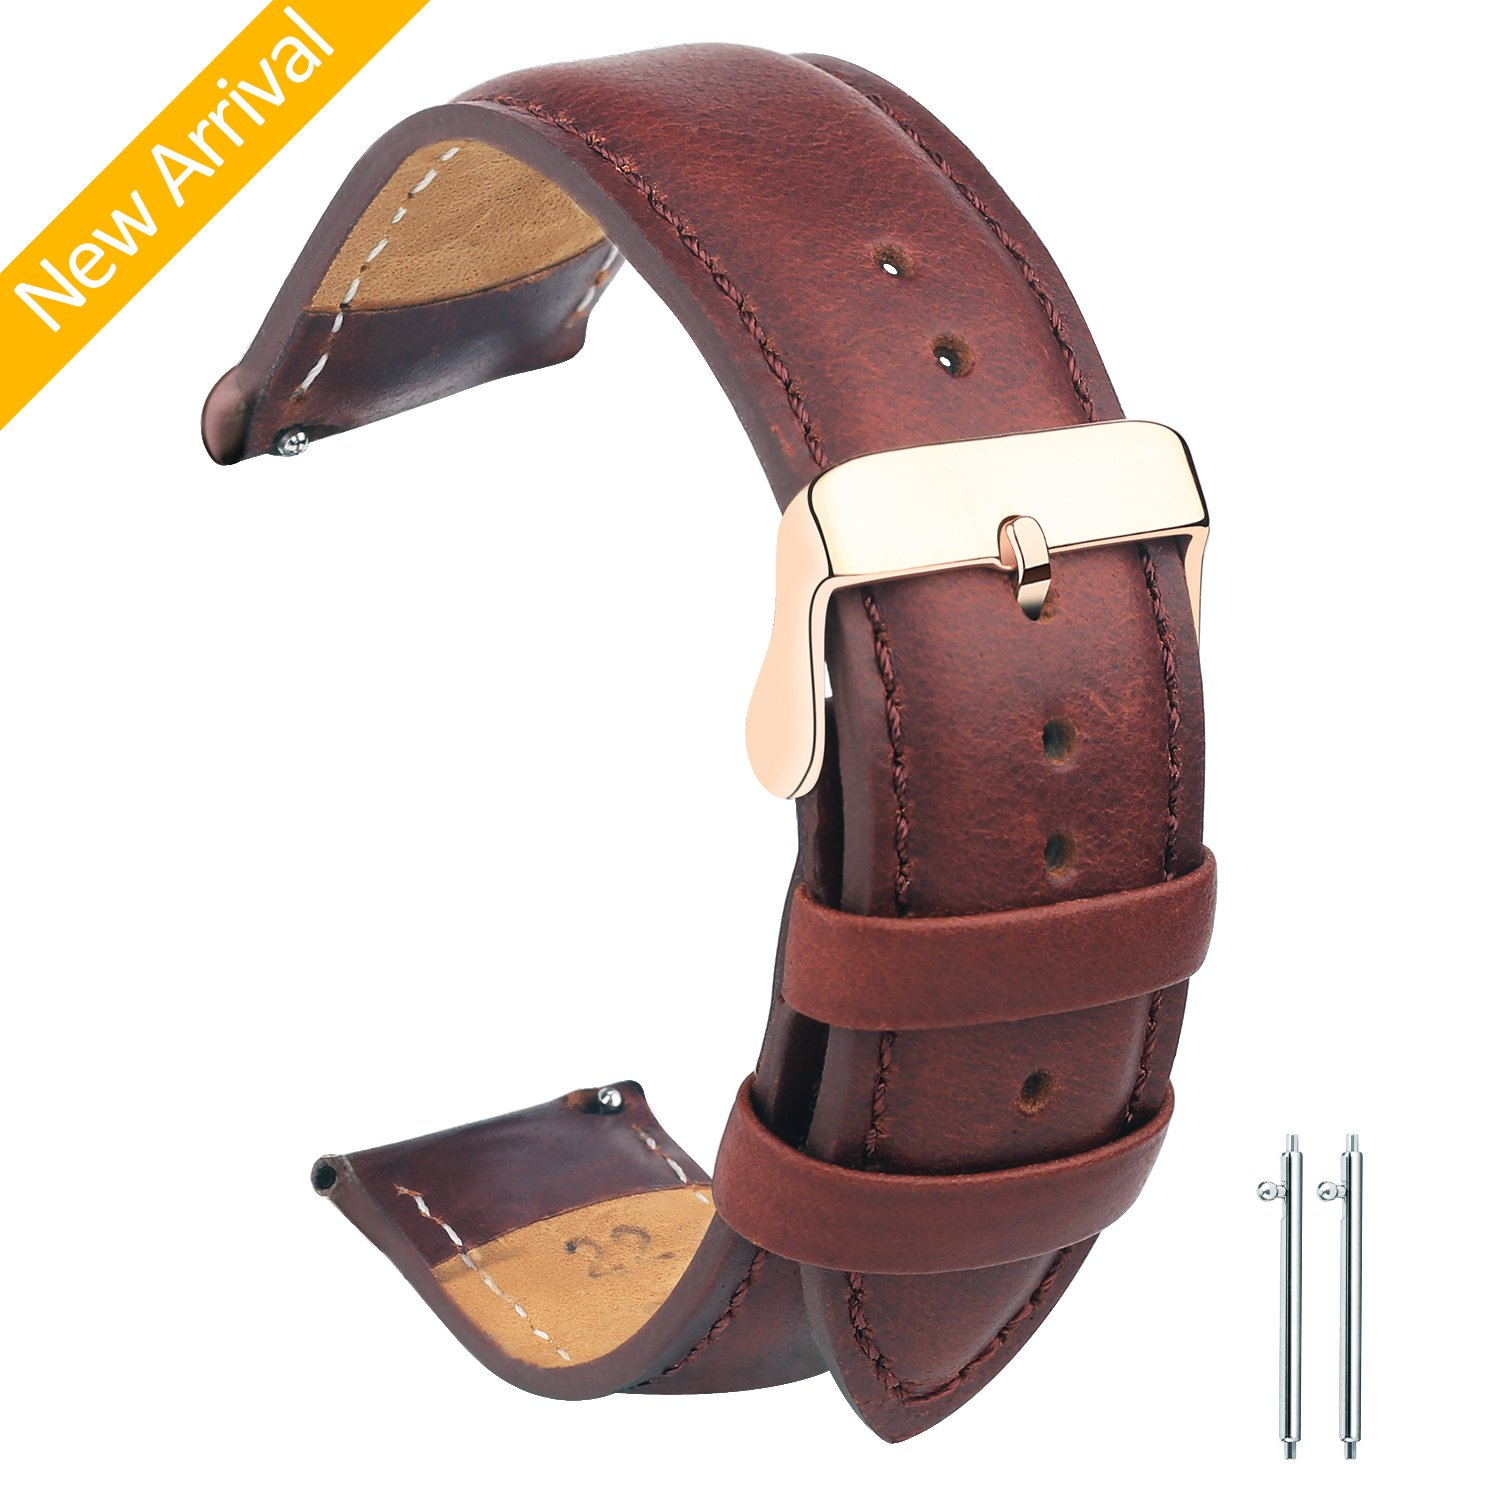 Vetoo 22mm/20mm Watch Bands Leather, Quick Release Classic Genuine Leather Replacement Watch Strap Wristband for Men and Women (Classic Brown & Rose Gold)